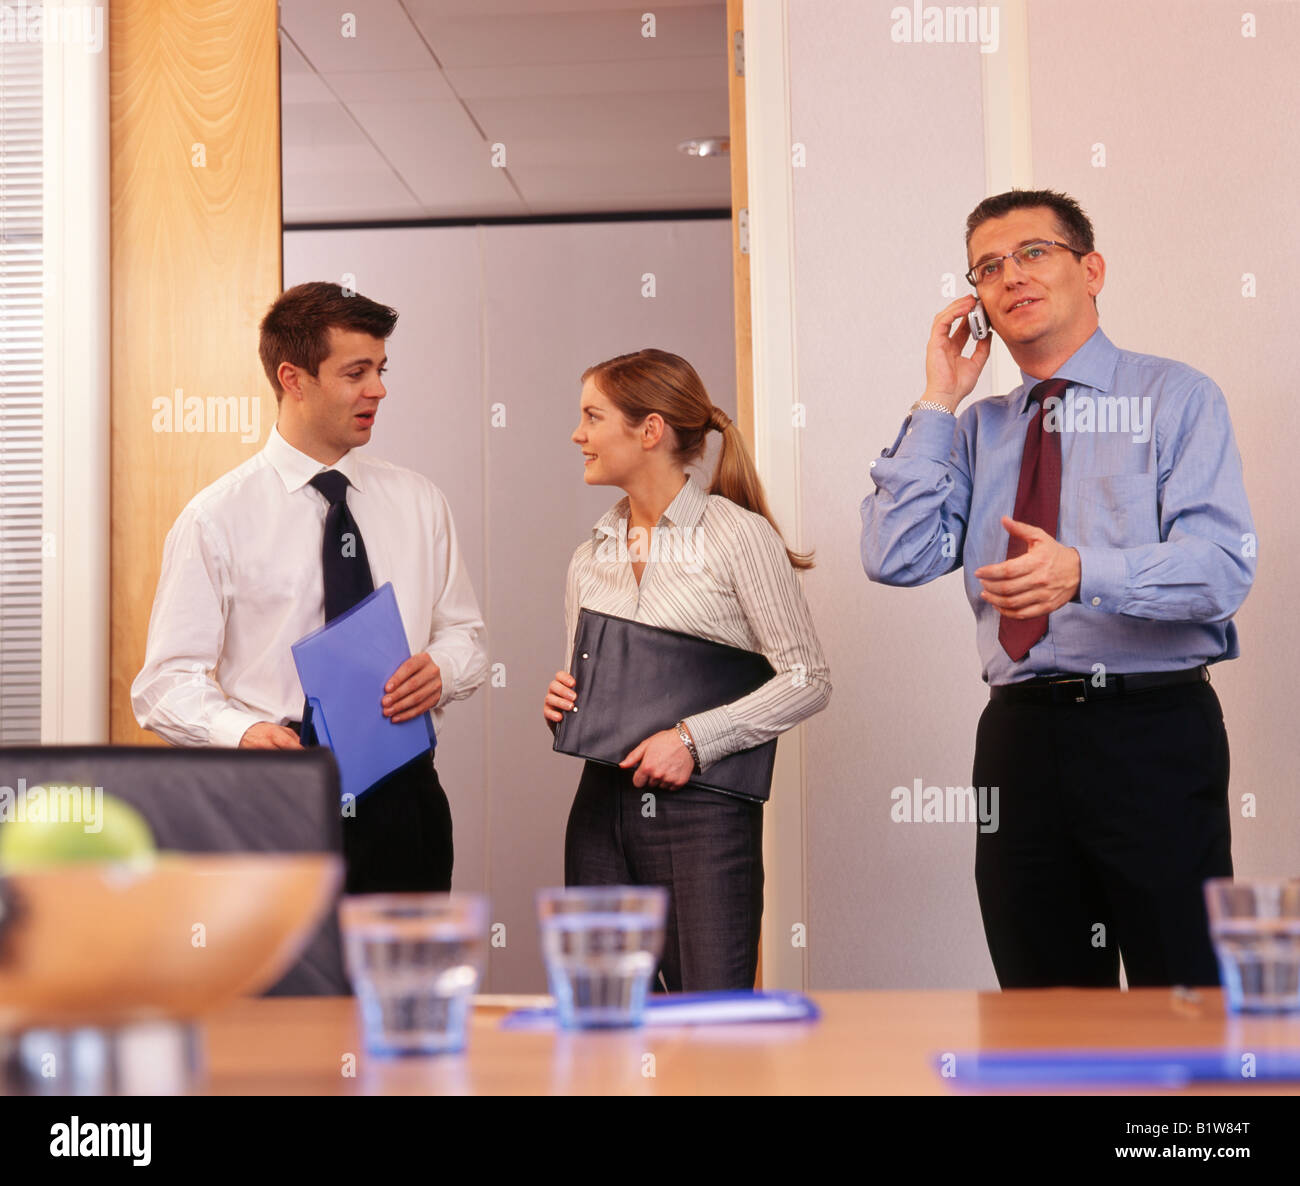 man with mobile phone at business meeting Stock Photo